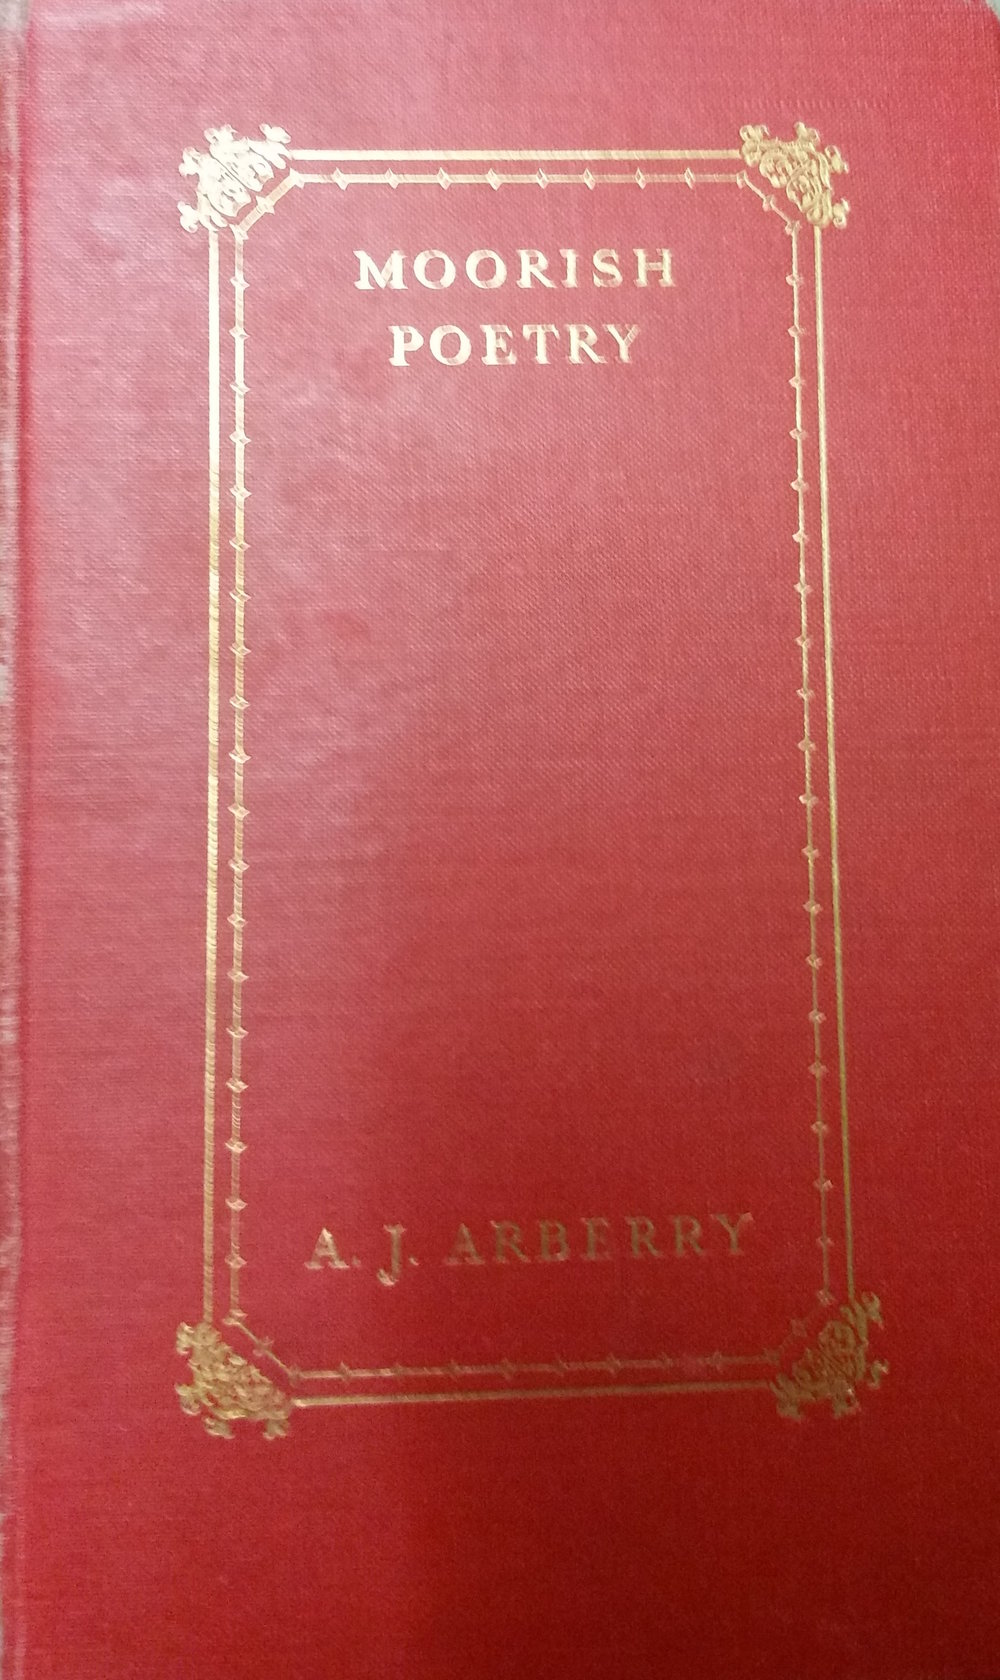 A.J. Arberry, Moorish Poetry (a translation of The pennants, an anthology compiled in 1243 by the Andalusian Ibn Saʻid) (Cambridge: Cambridge University Press, 1953)